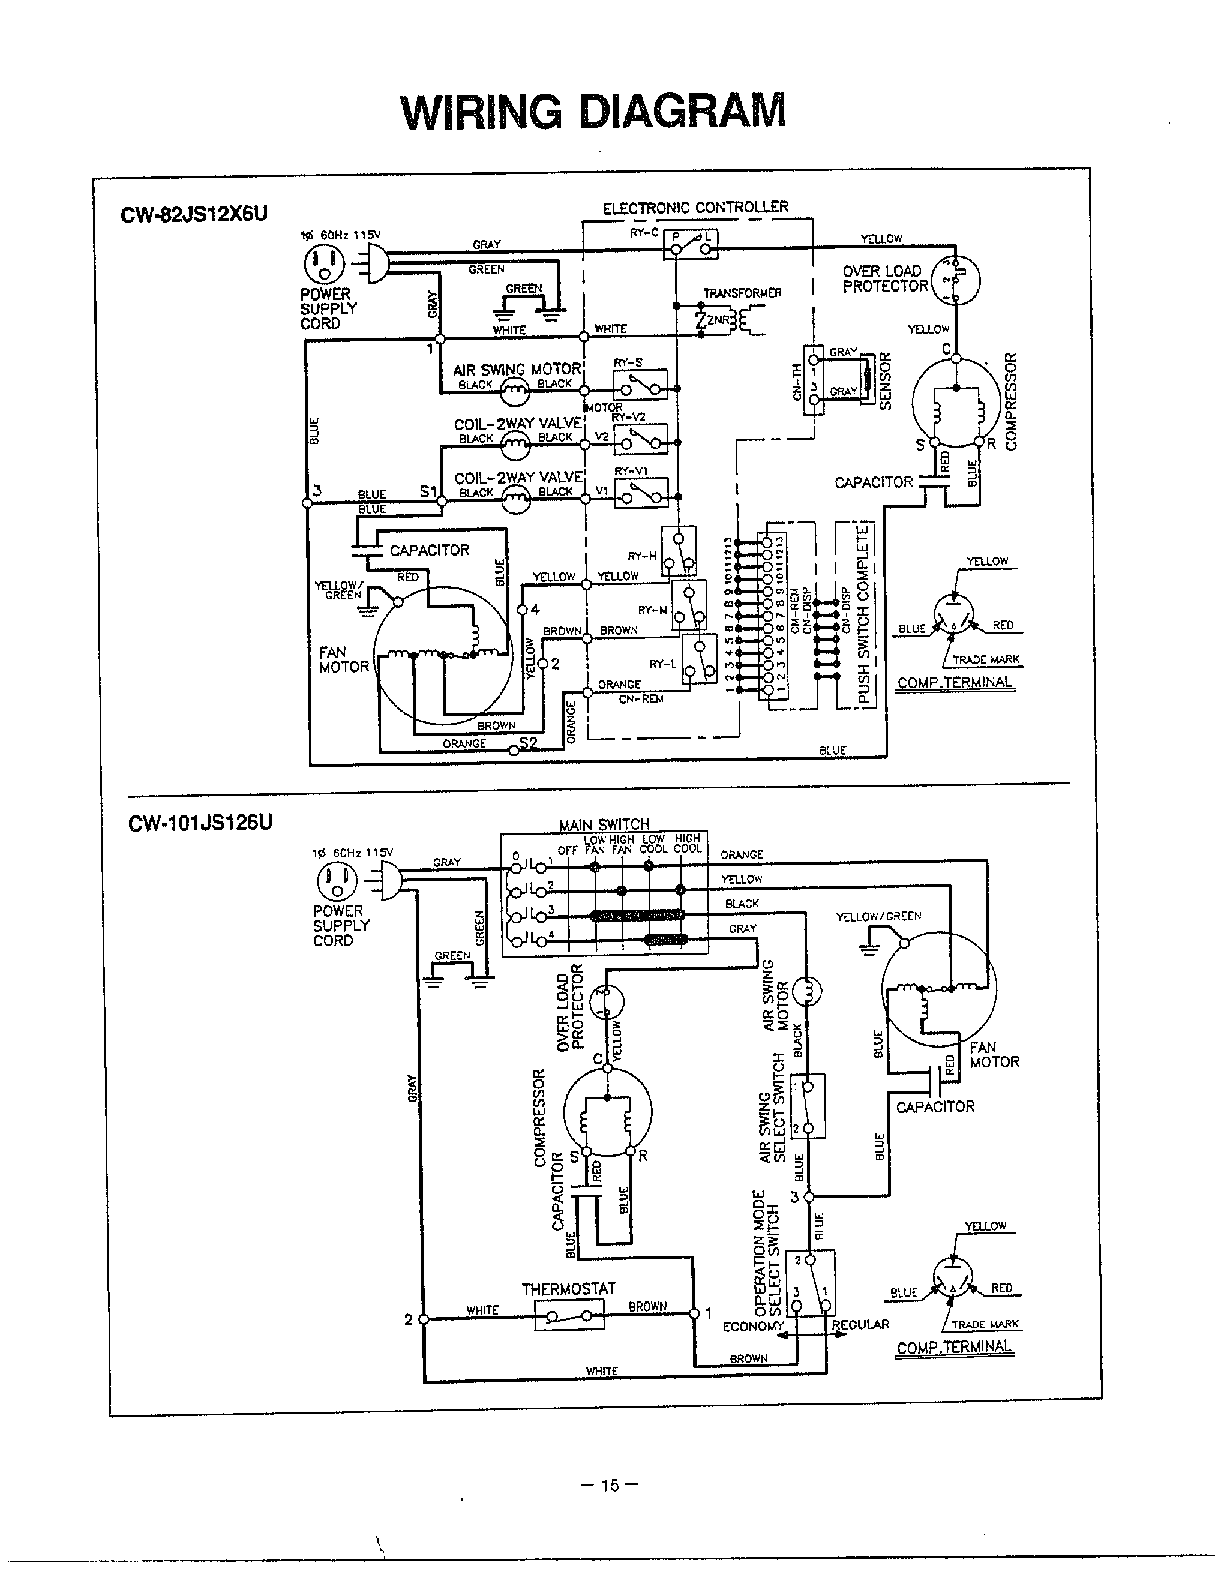 Panasonic Sbwa340 Wiring Diagram